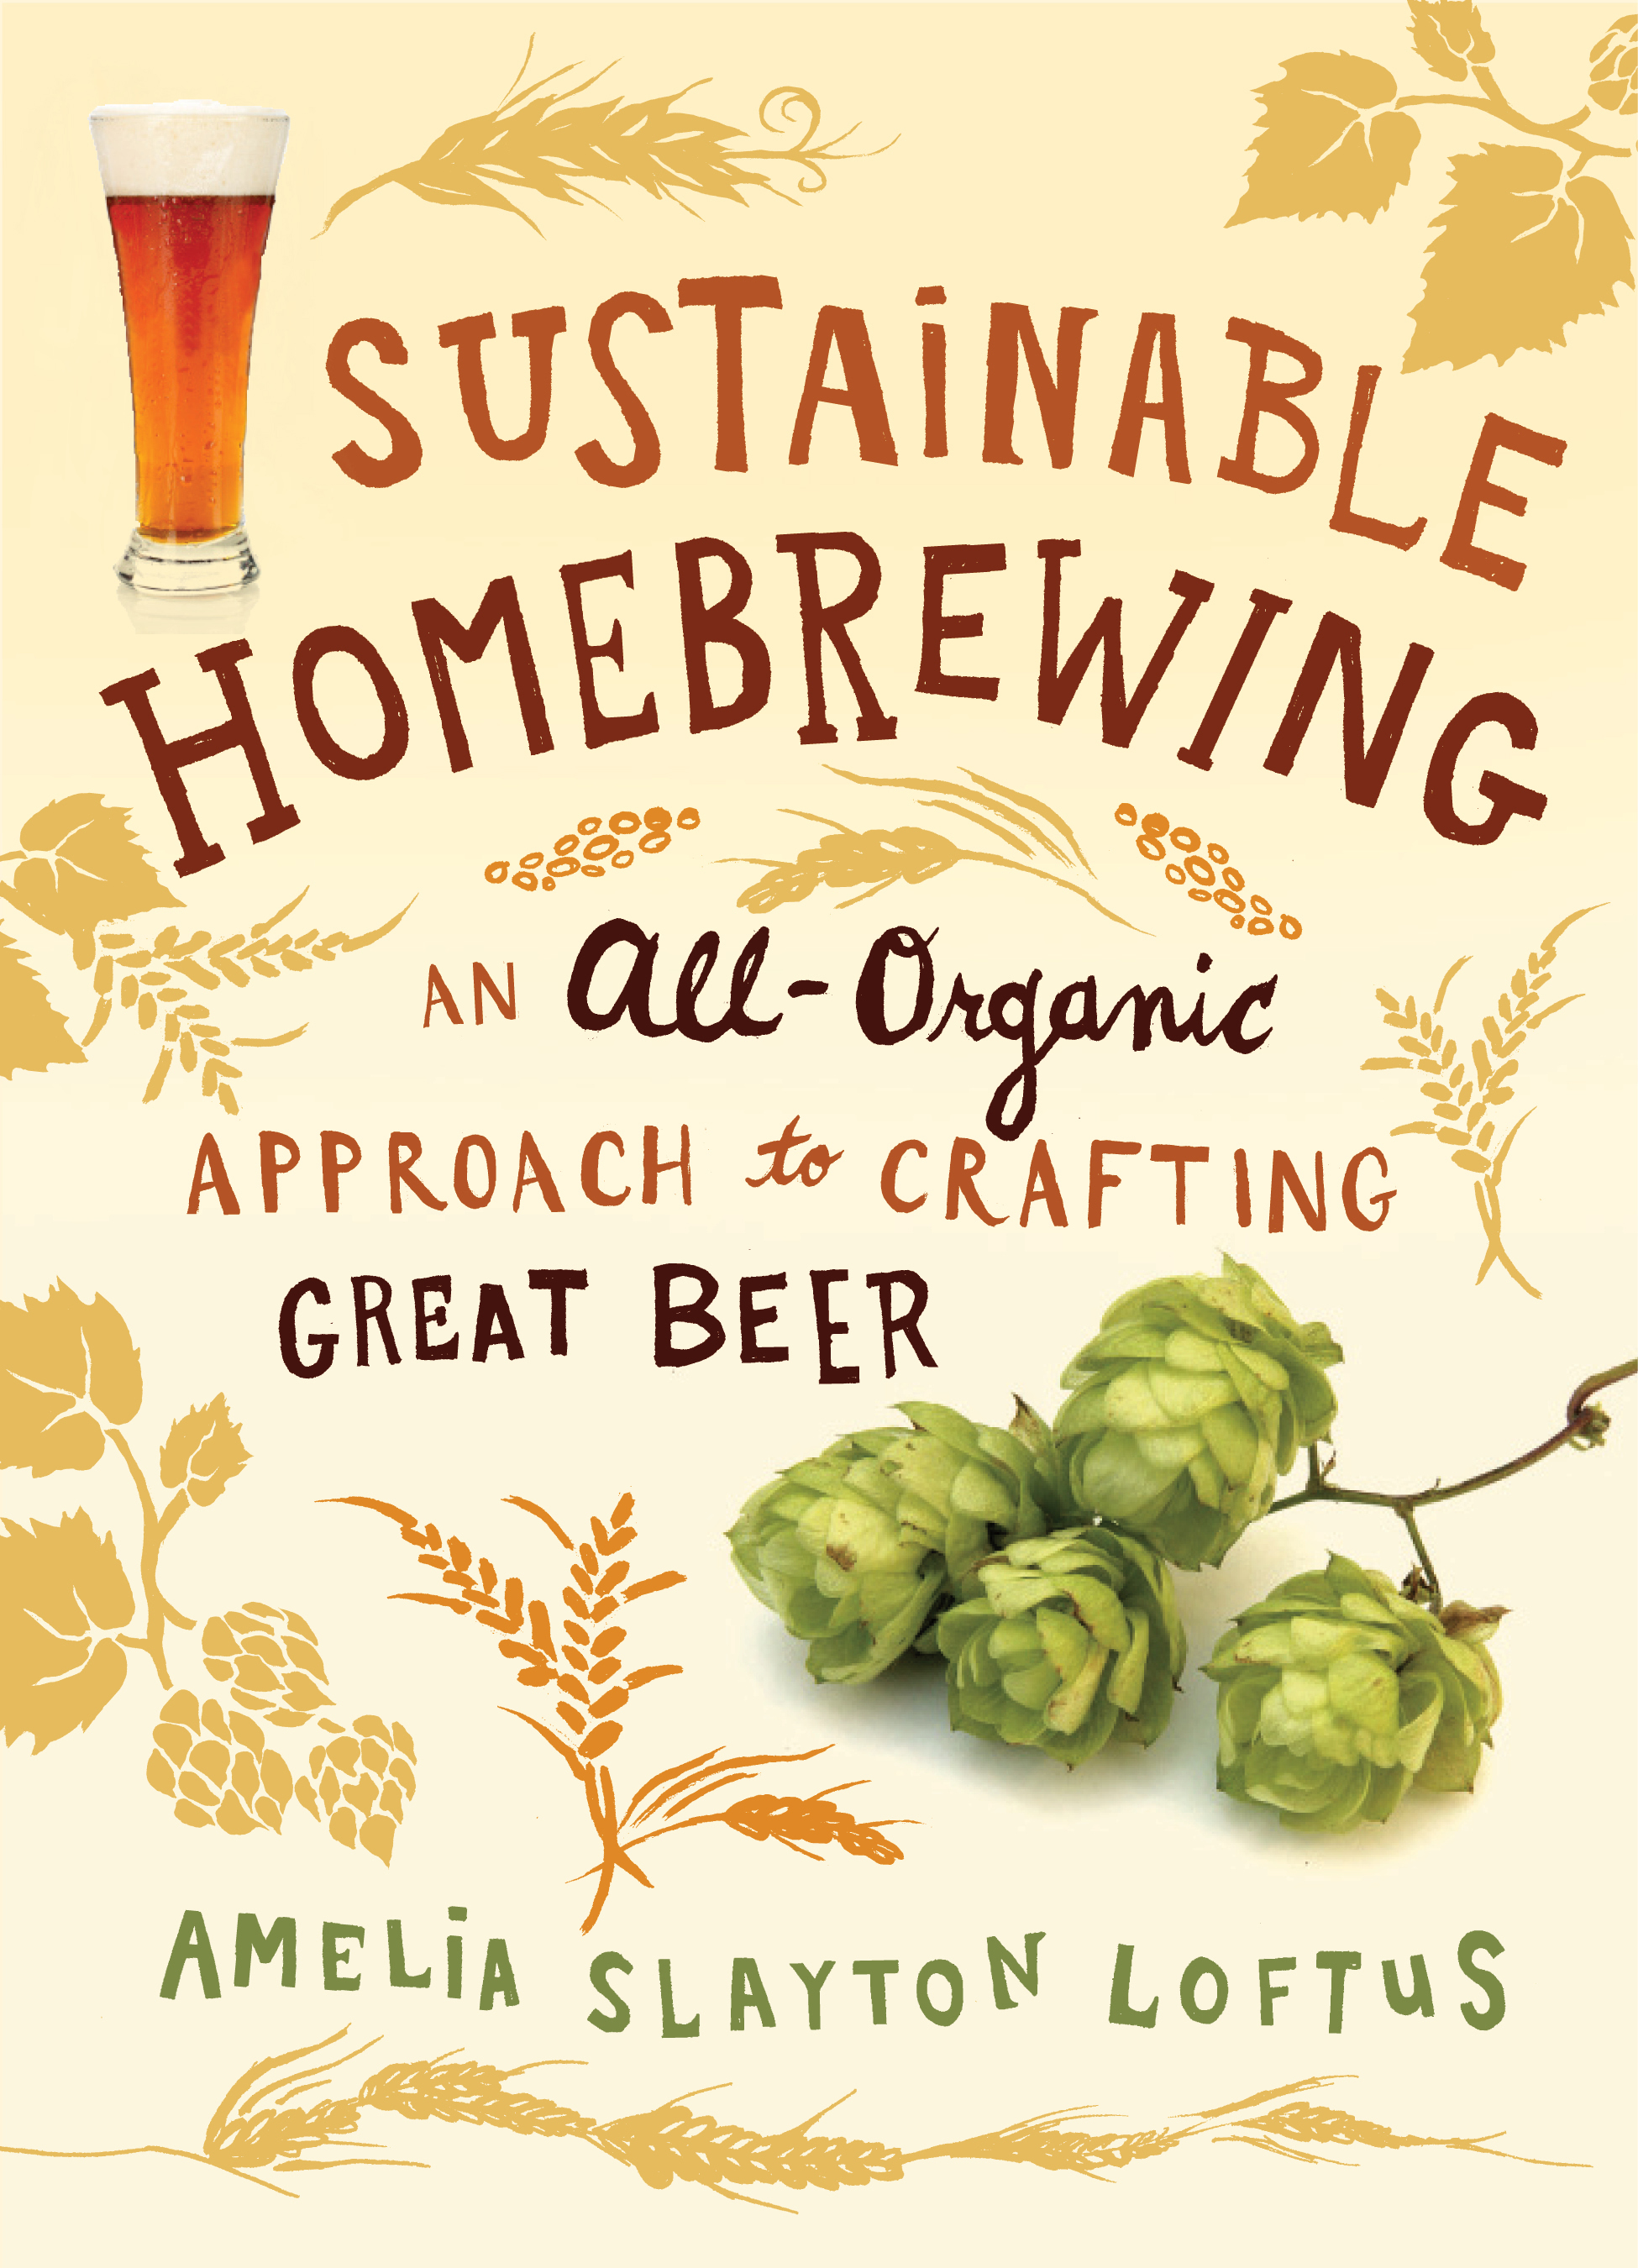 Sustainable Homebrewing An All-Organic Approach to Crafting Great Beer - Amelia Slayton Loftus